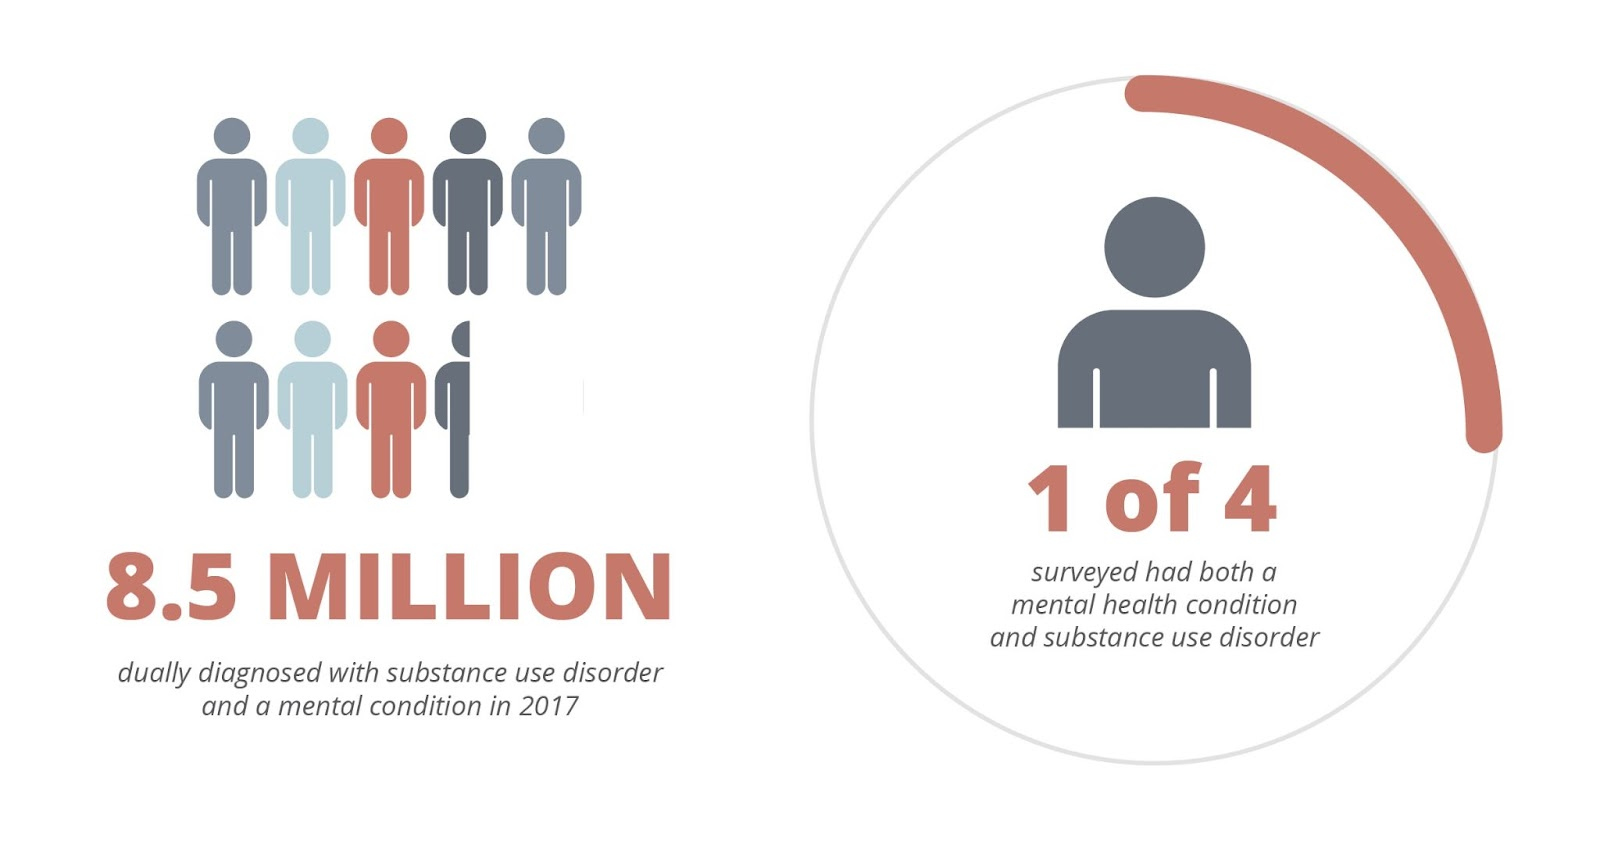 8.5  million dually diagnosed with substance use disorder and a mental condition in 2017. 1 of 4 surveyed had both a mental health condition and a substance use disorder.